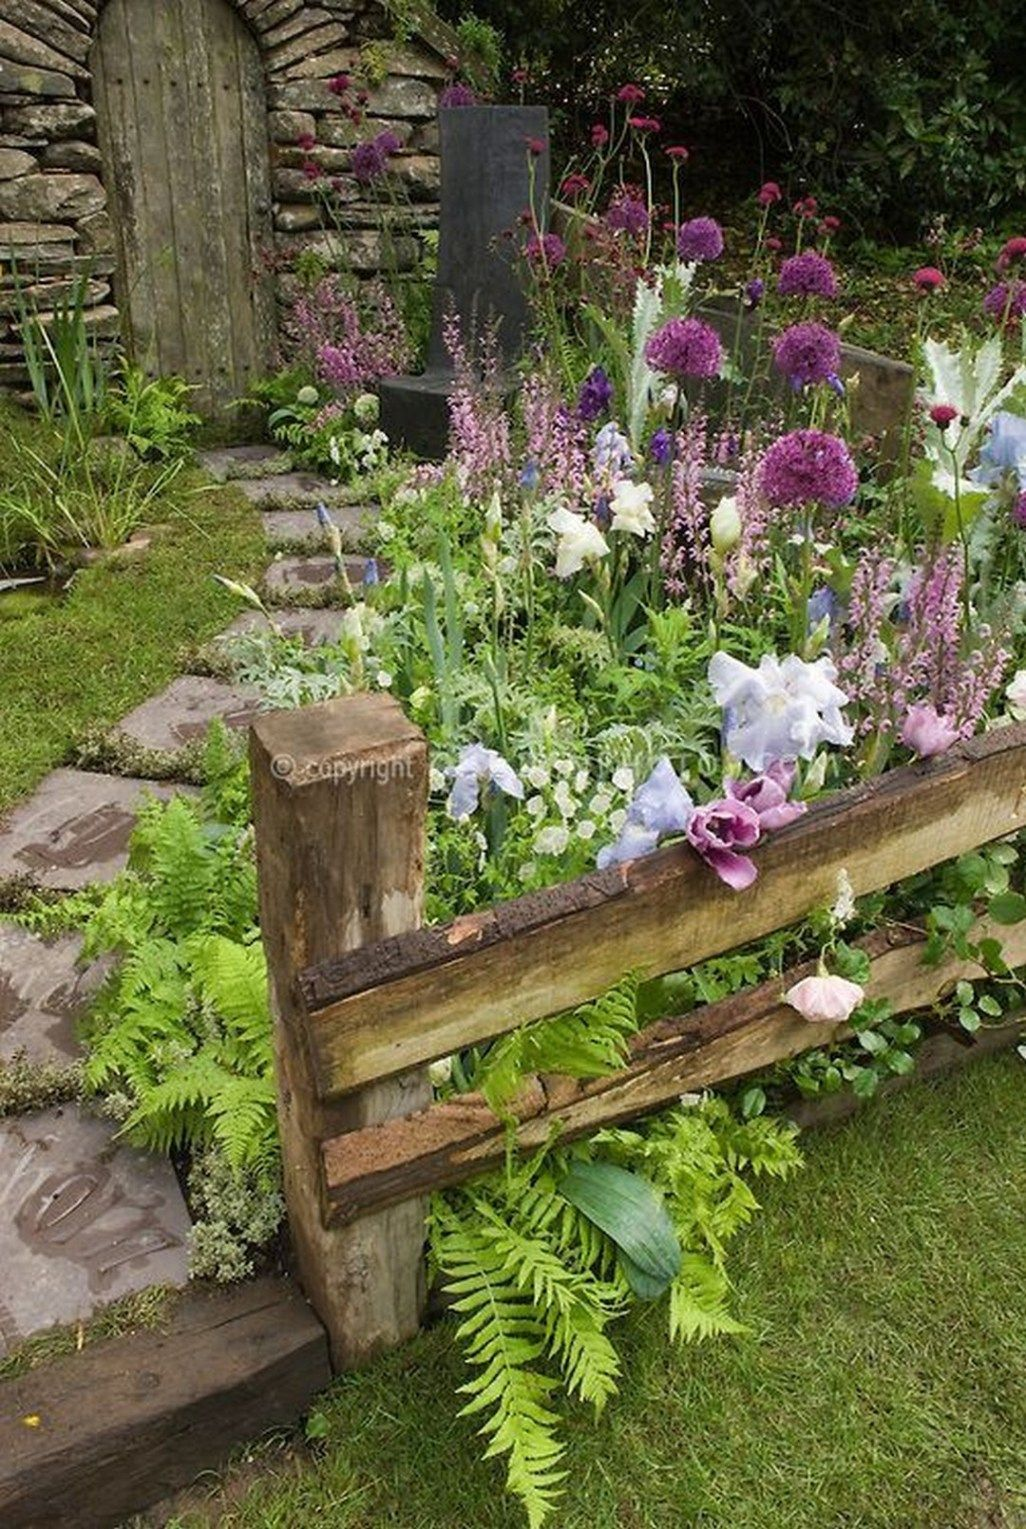 Garten Ideen Pinterest Best Diy Cottage Garden Ideas From Pinterest 20